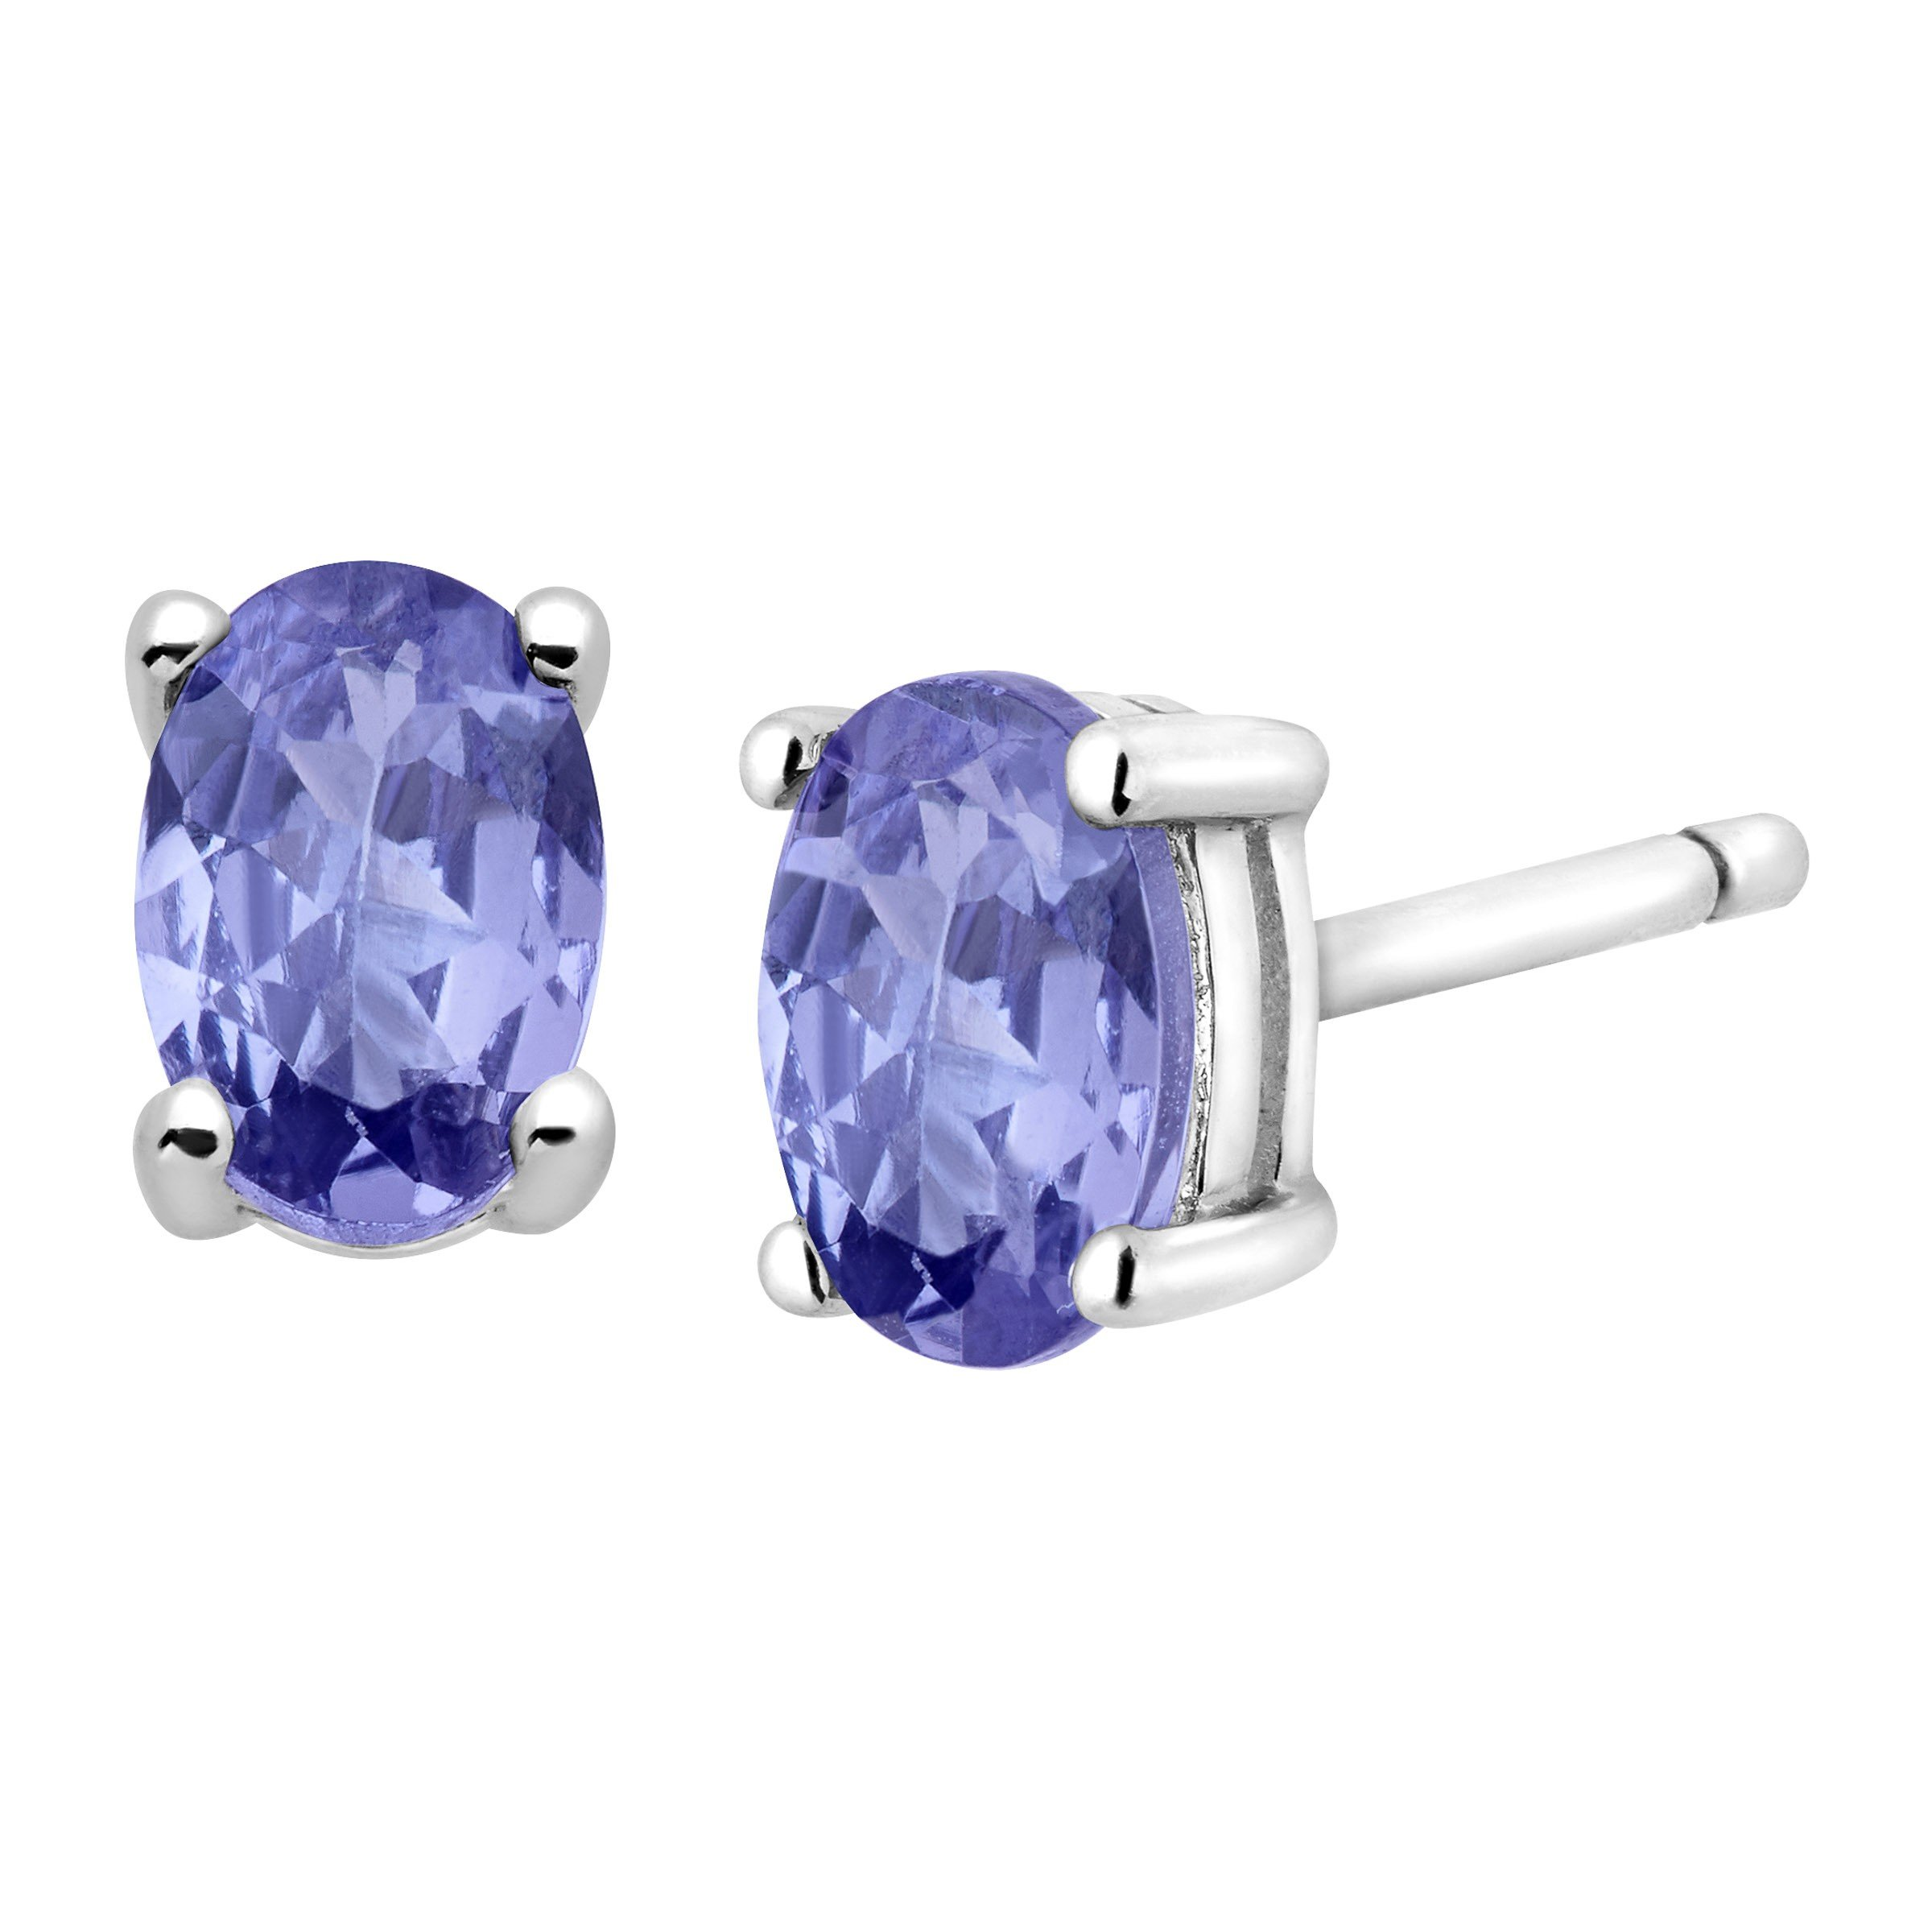 1 ct Natural Tanzanite Oval Stud Earrings in Sterling Silver